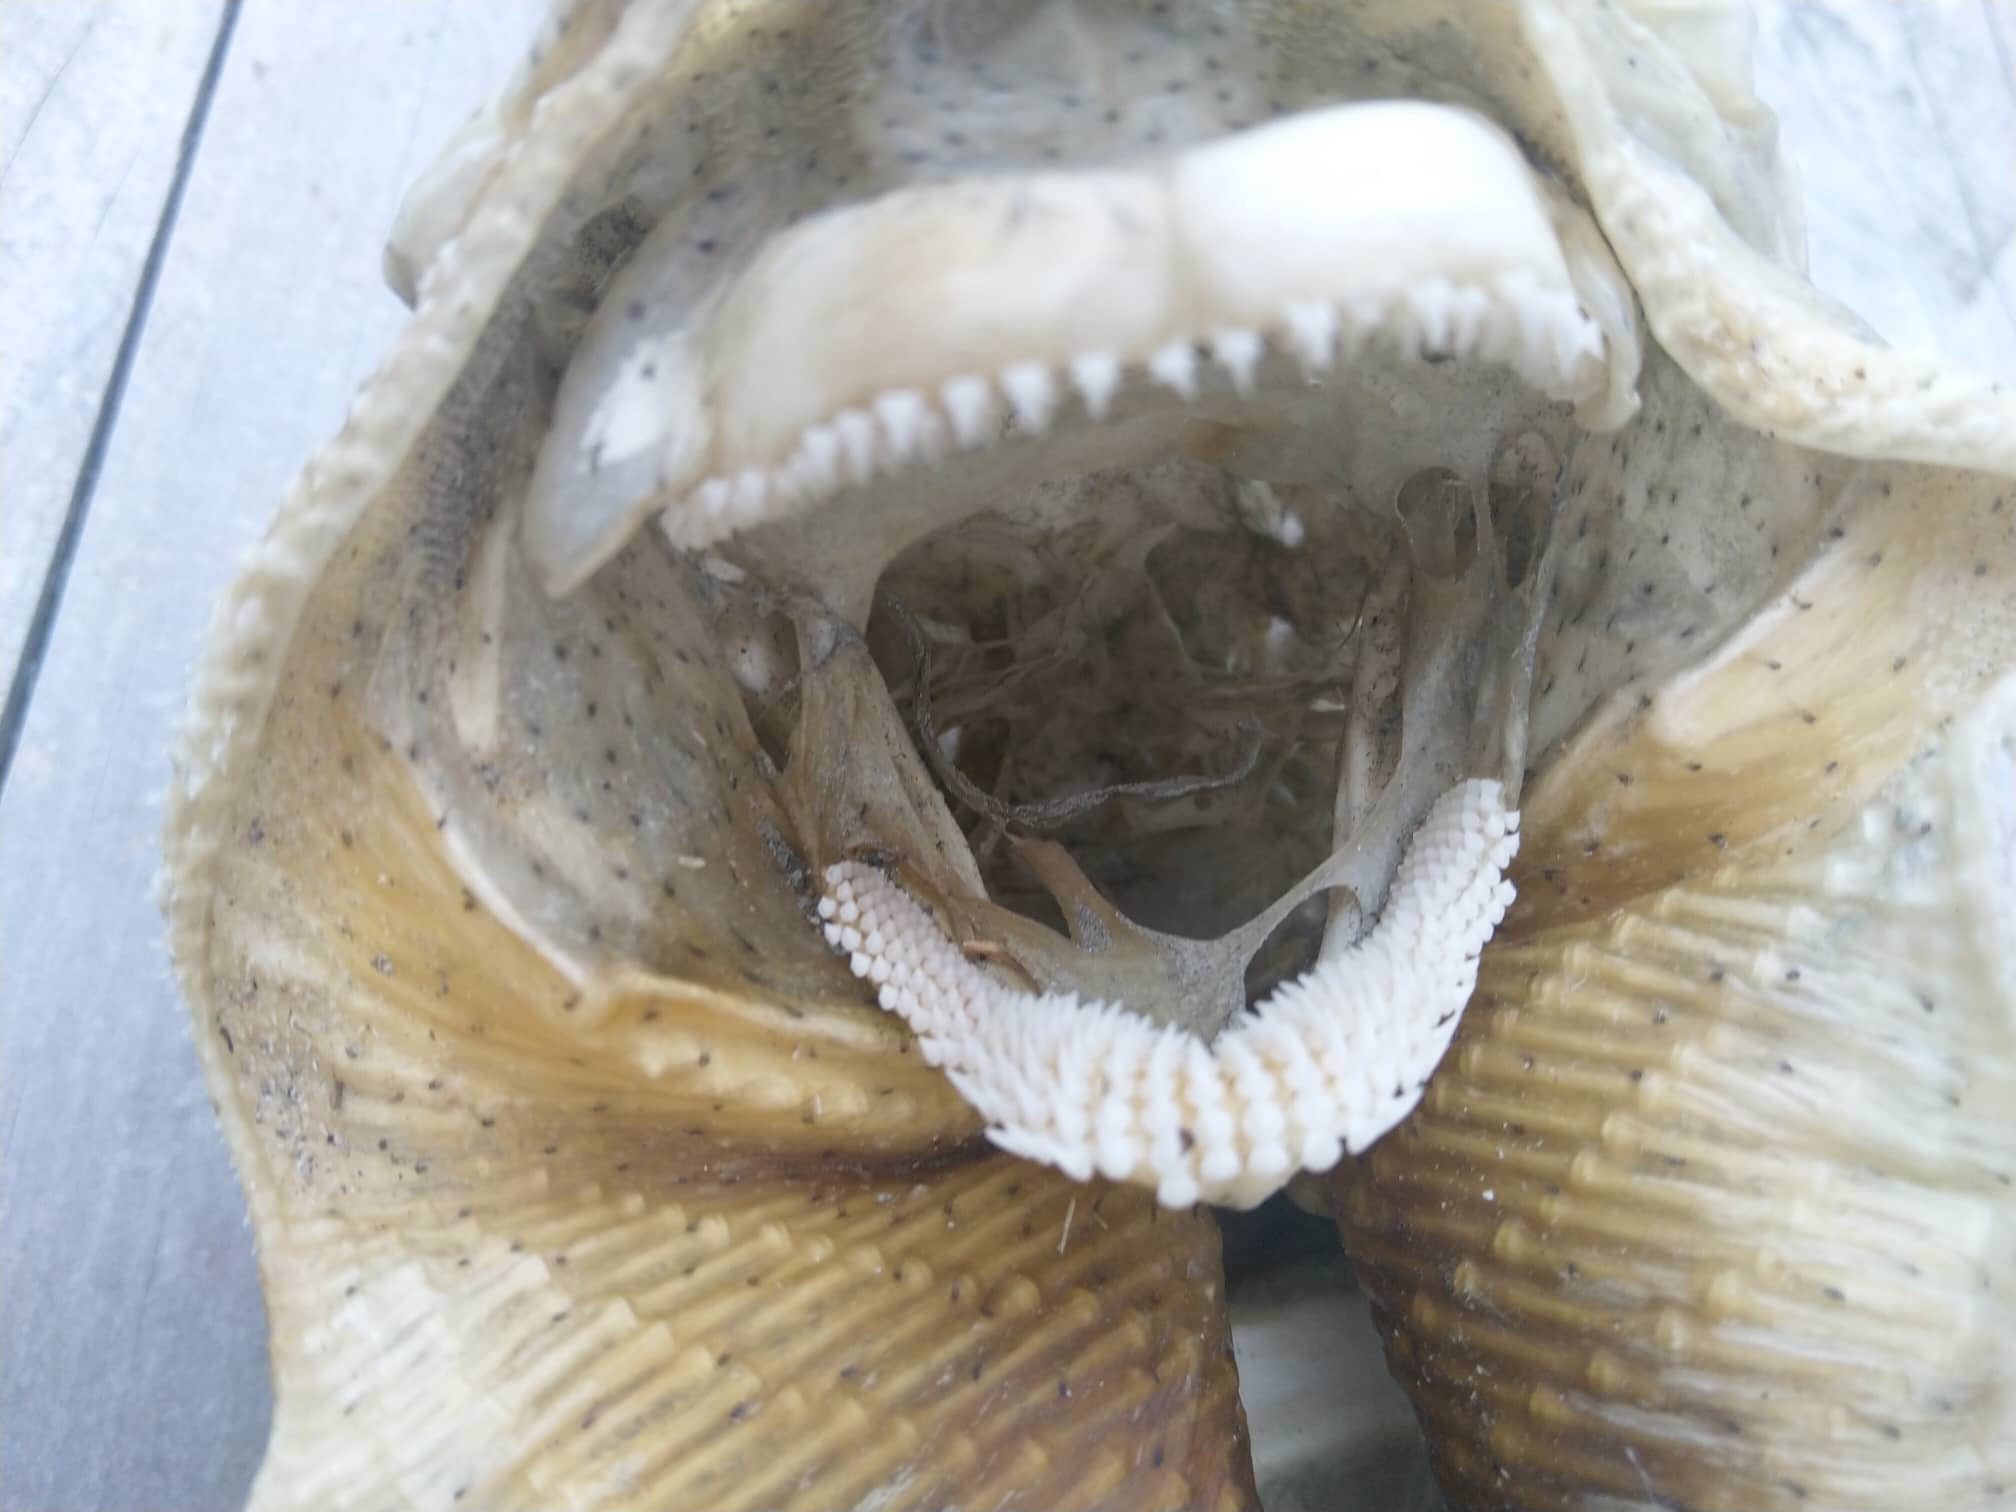 Mysterious sea creature draws 'alien' comparisons with its sharp teeth, spiky skin